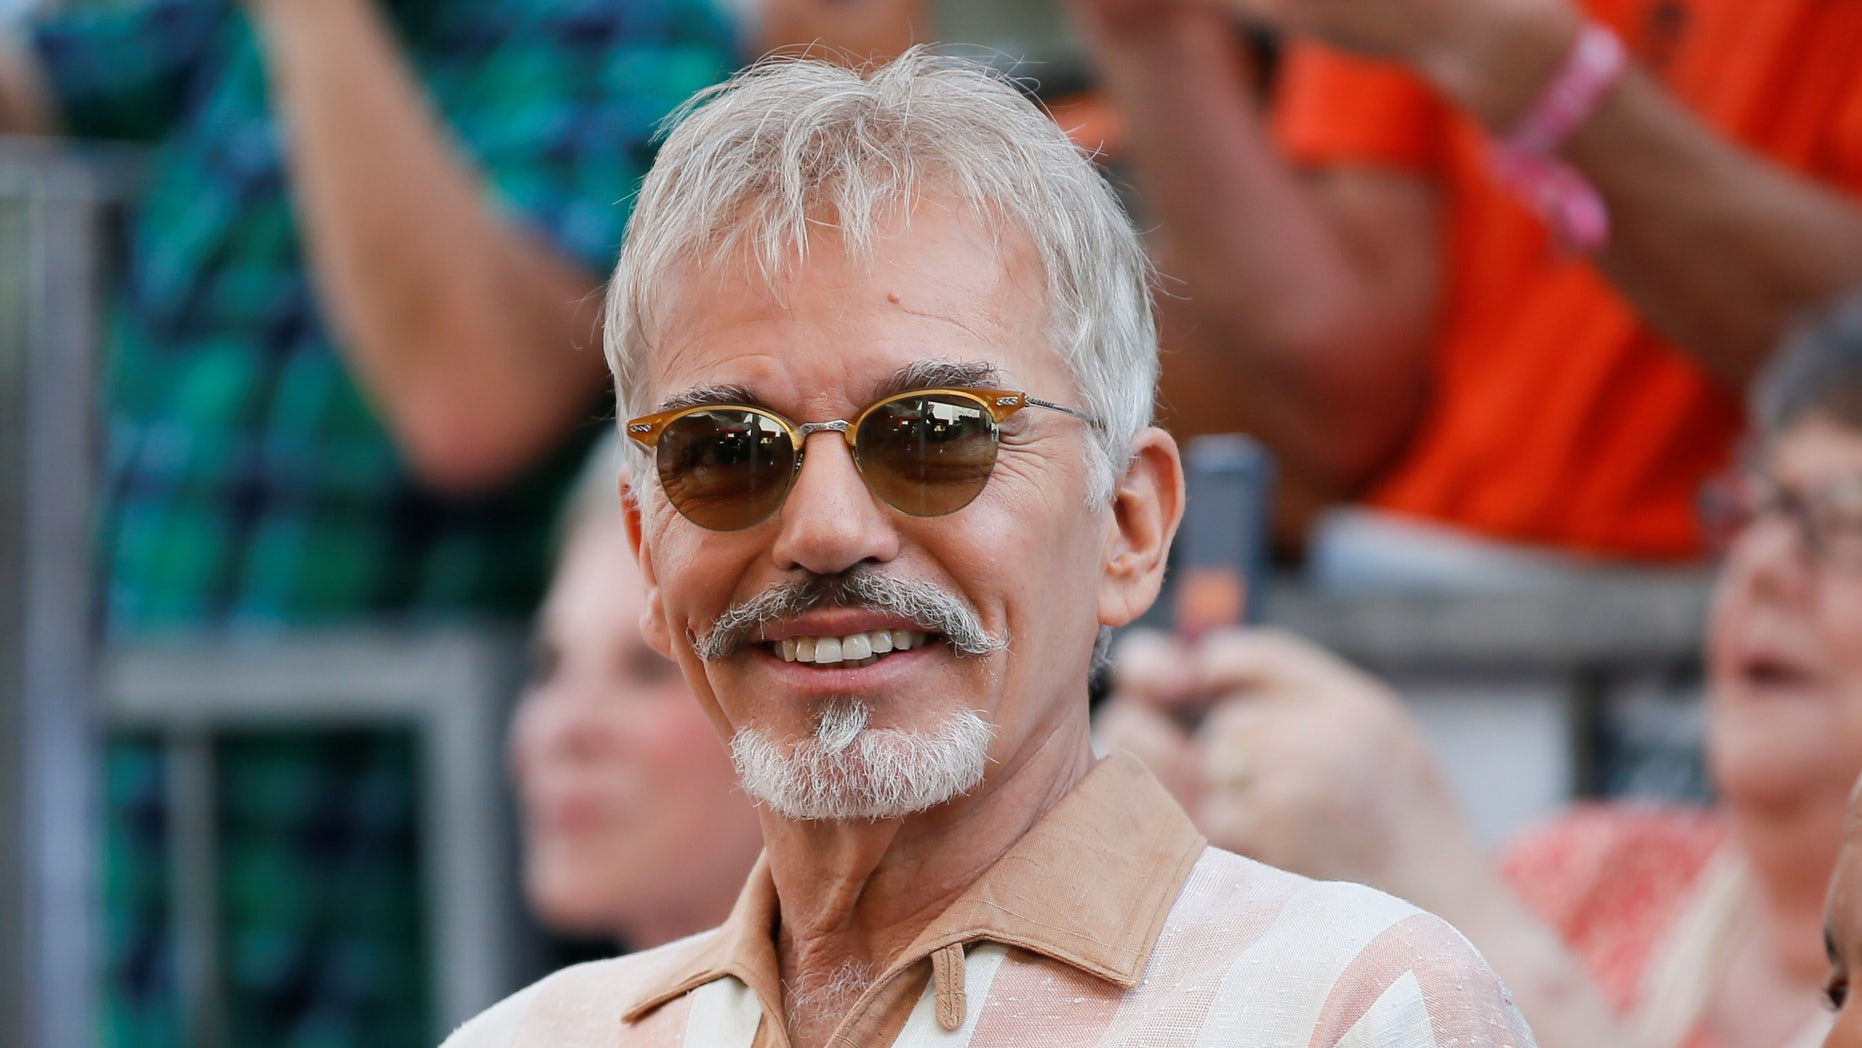 Actor Billy Bob Thornton smiles during a ceremony honoring actor Kathy Bates with a star on the Hollywood Walk of Fame in Hollywood, California September 20, 2016. REUTERS/Danny Moloshok - RTSOO4N